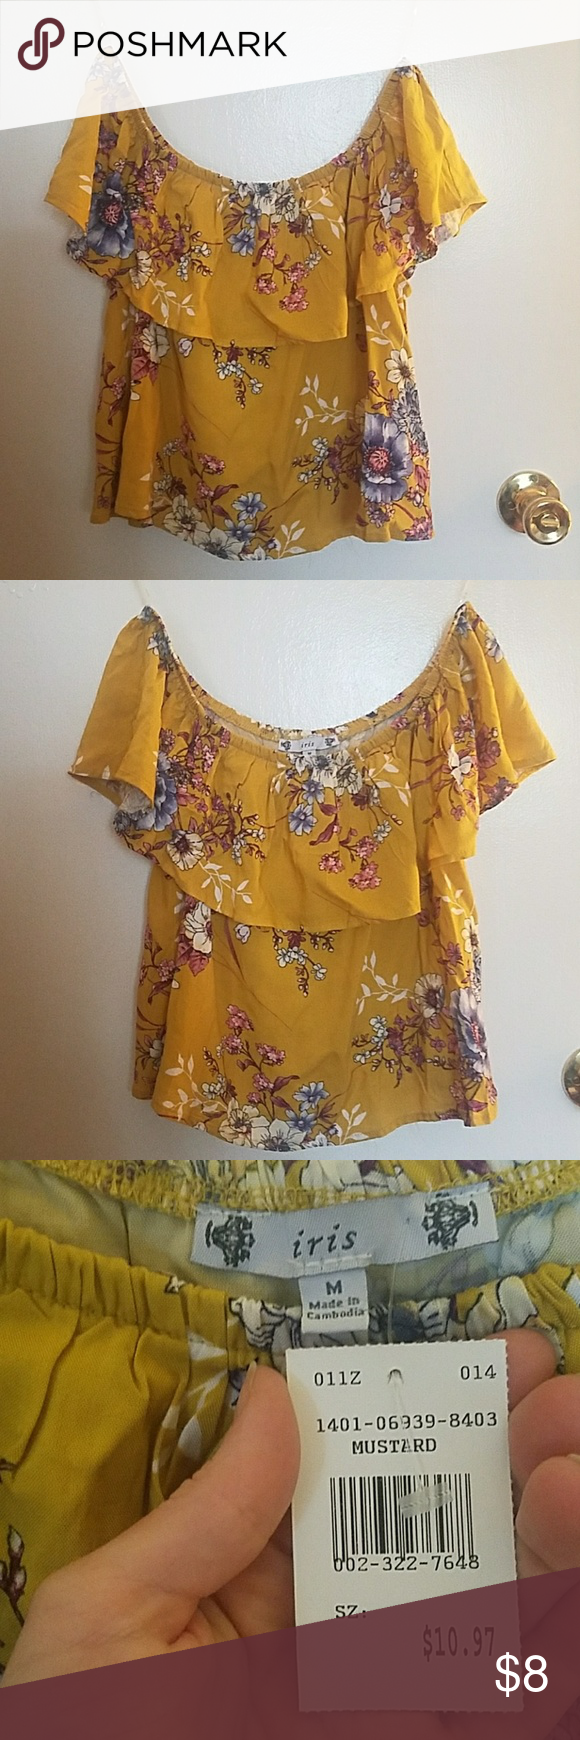 dc3e5e0d4d316c Off the shoulder mustard shirt This is a fun